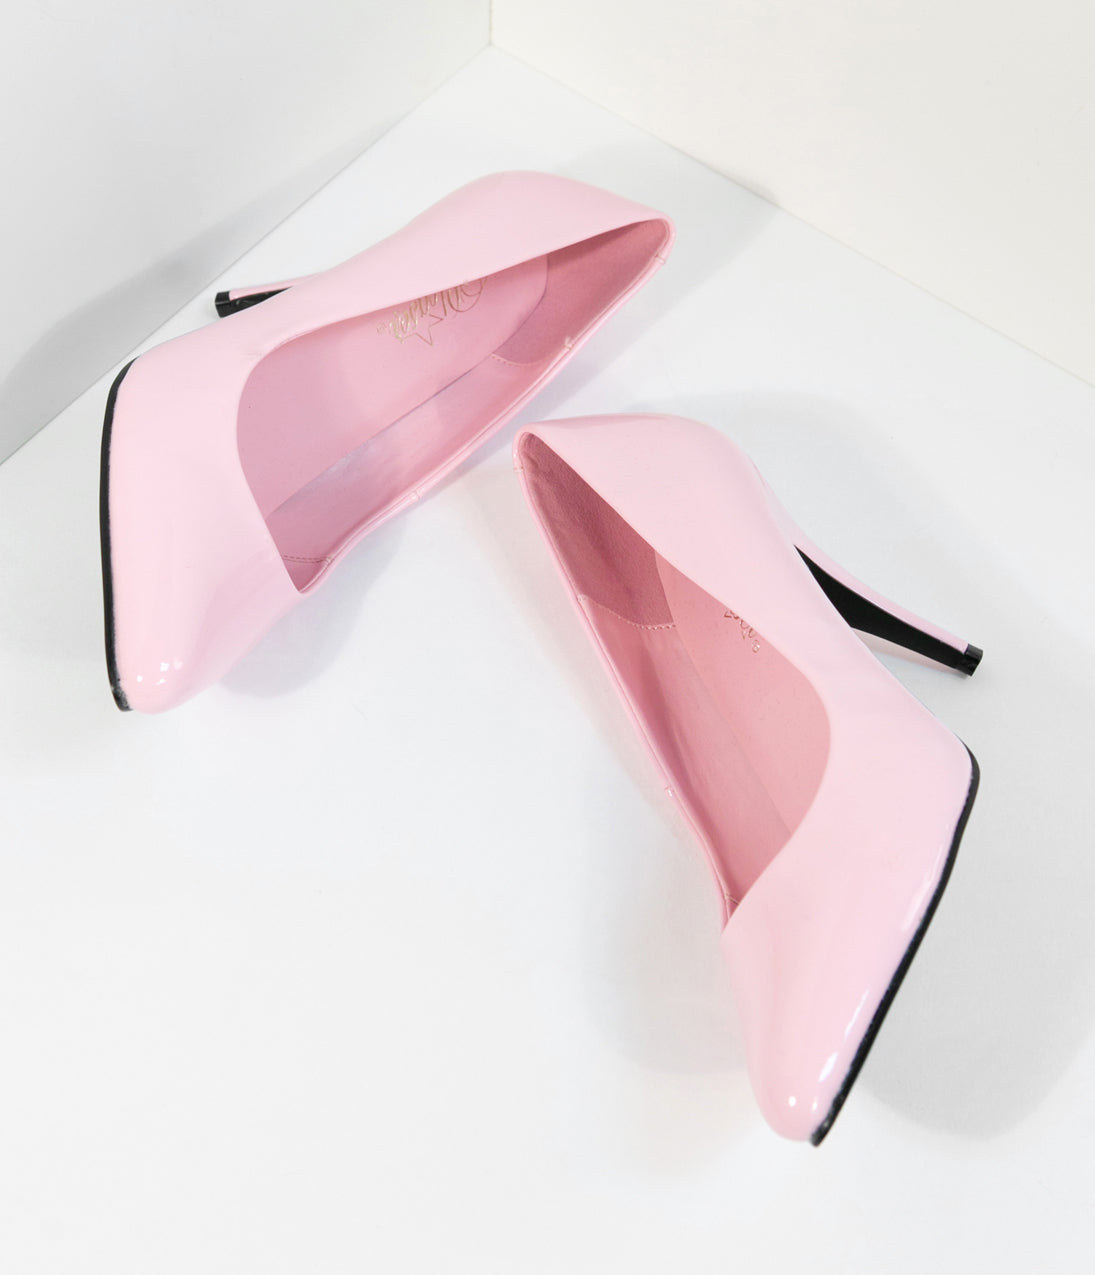 1950s Style Shoes Baby Pink Patent Leatherette Vanity Pumps $44.00 AT vintagedancer.com